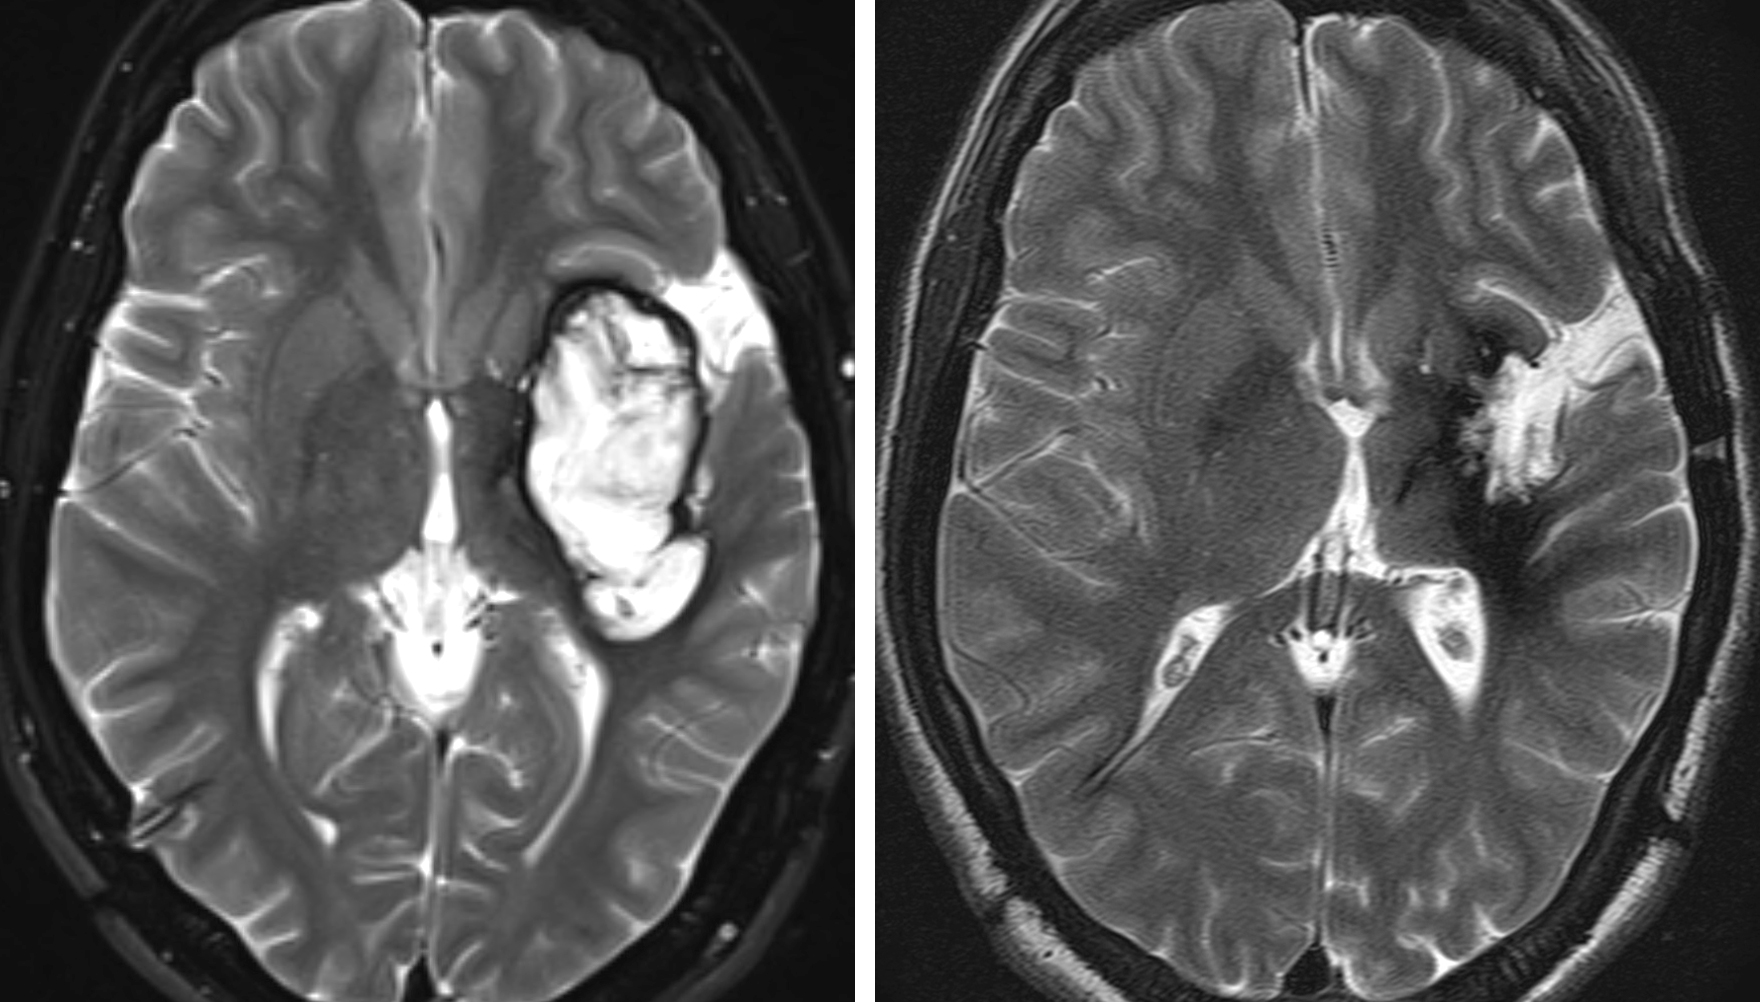 Figure 9: A lateral insular CM (left) was resected via the transinsular route. The extended gliotic margins encompassed the descending motor tracts. These gliotic margins were carefully protected during resection (right).